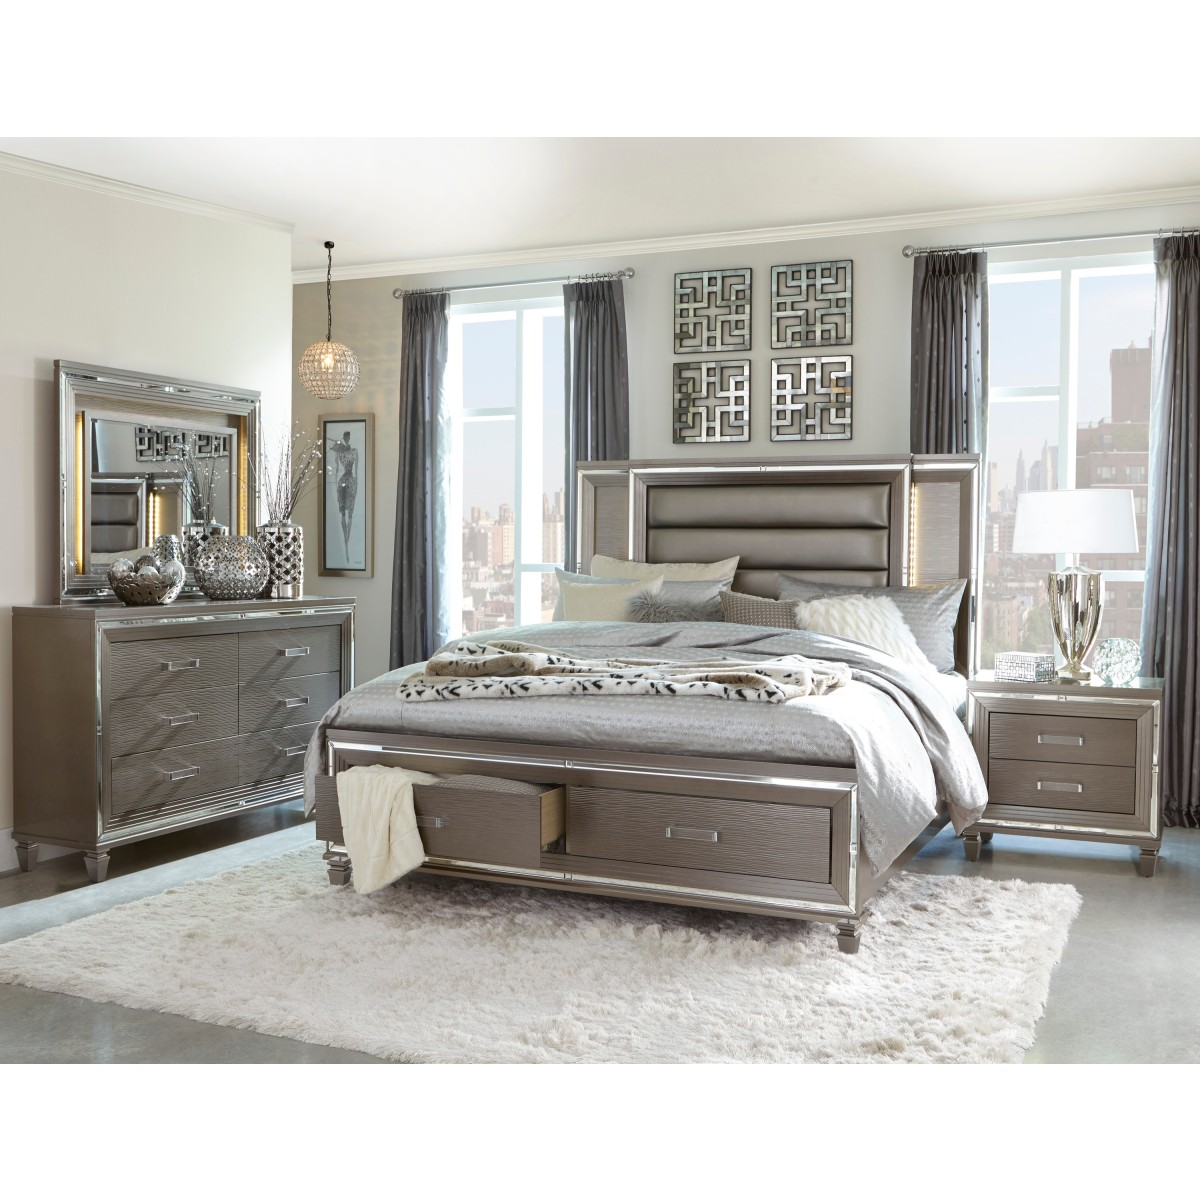 1616-1* Queen Platform Bed with Footboard Storage, LED ...